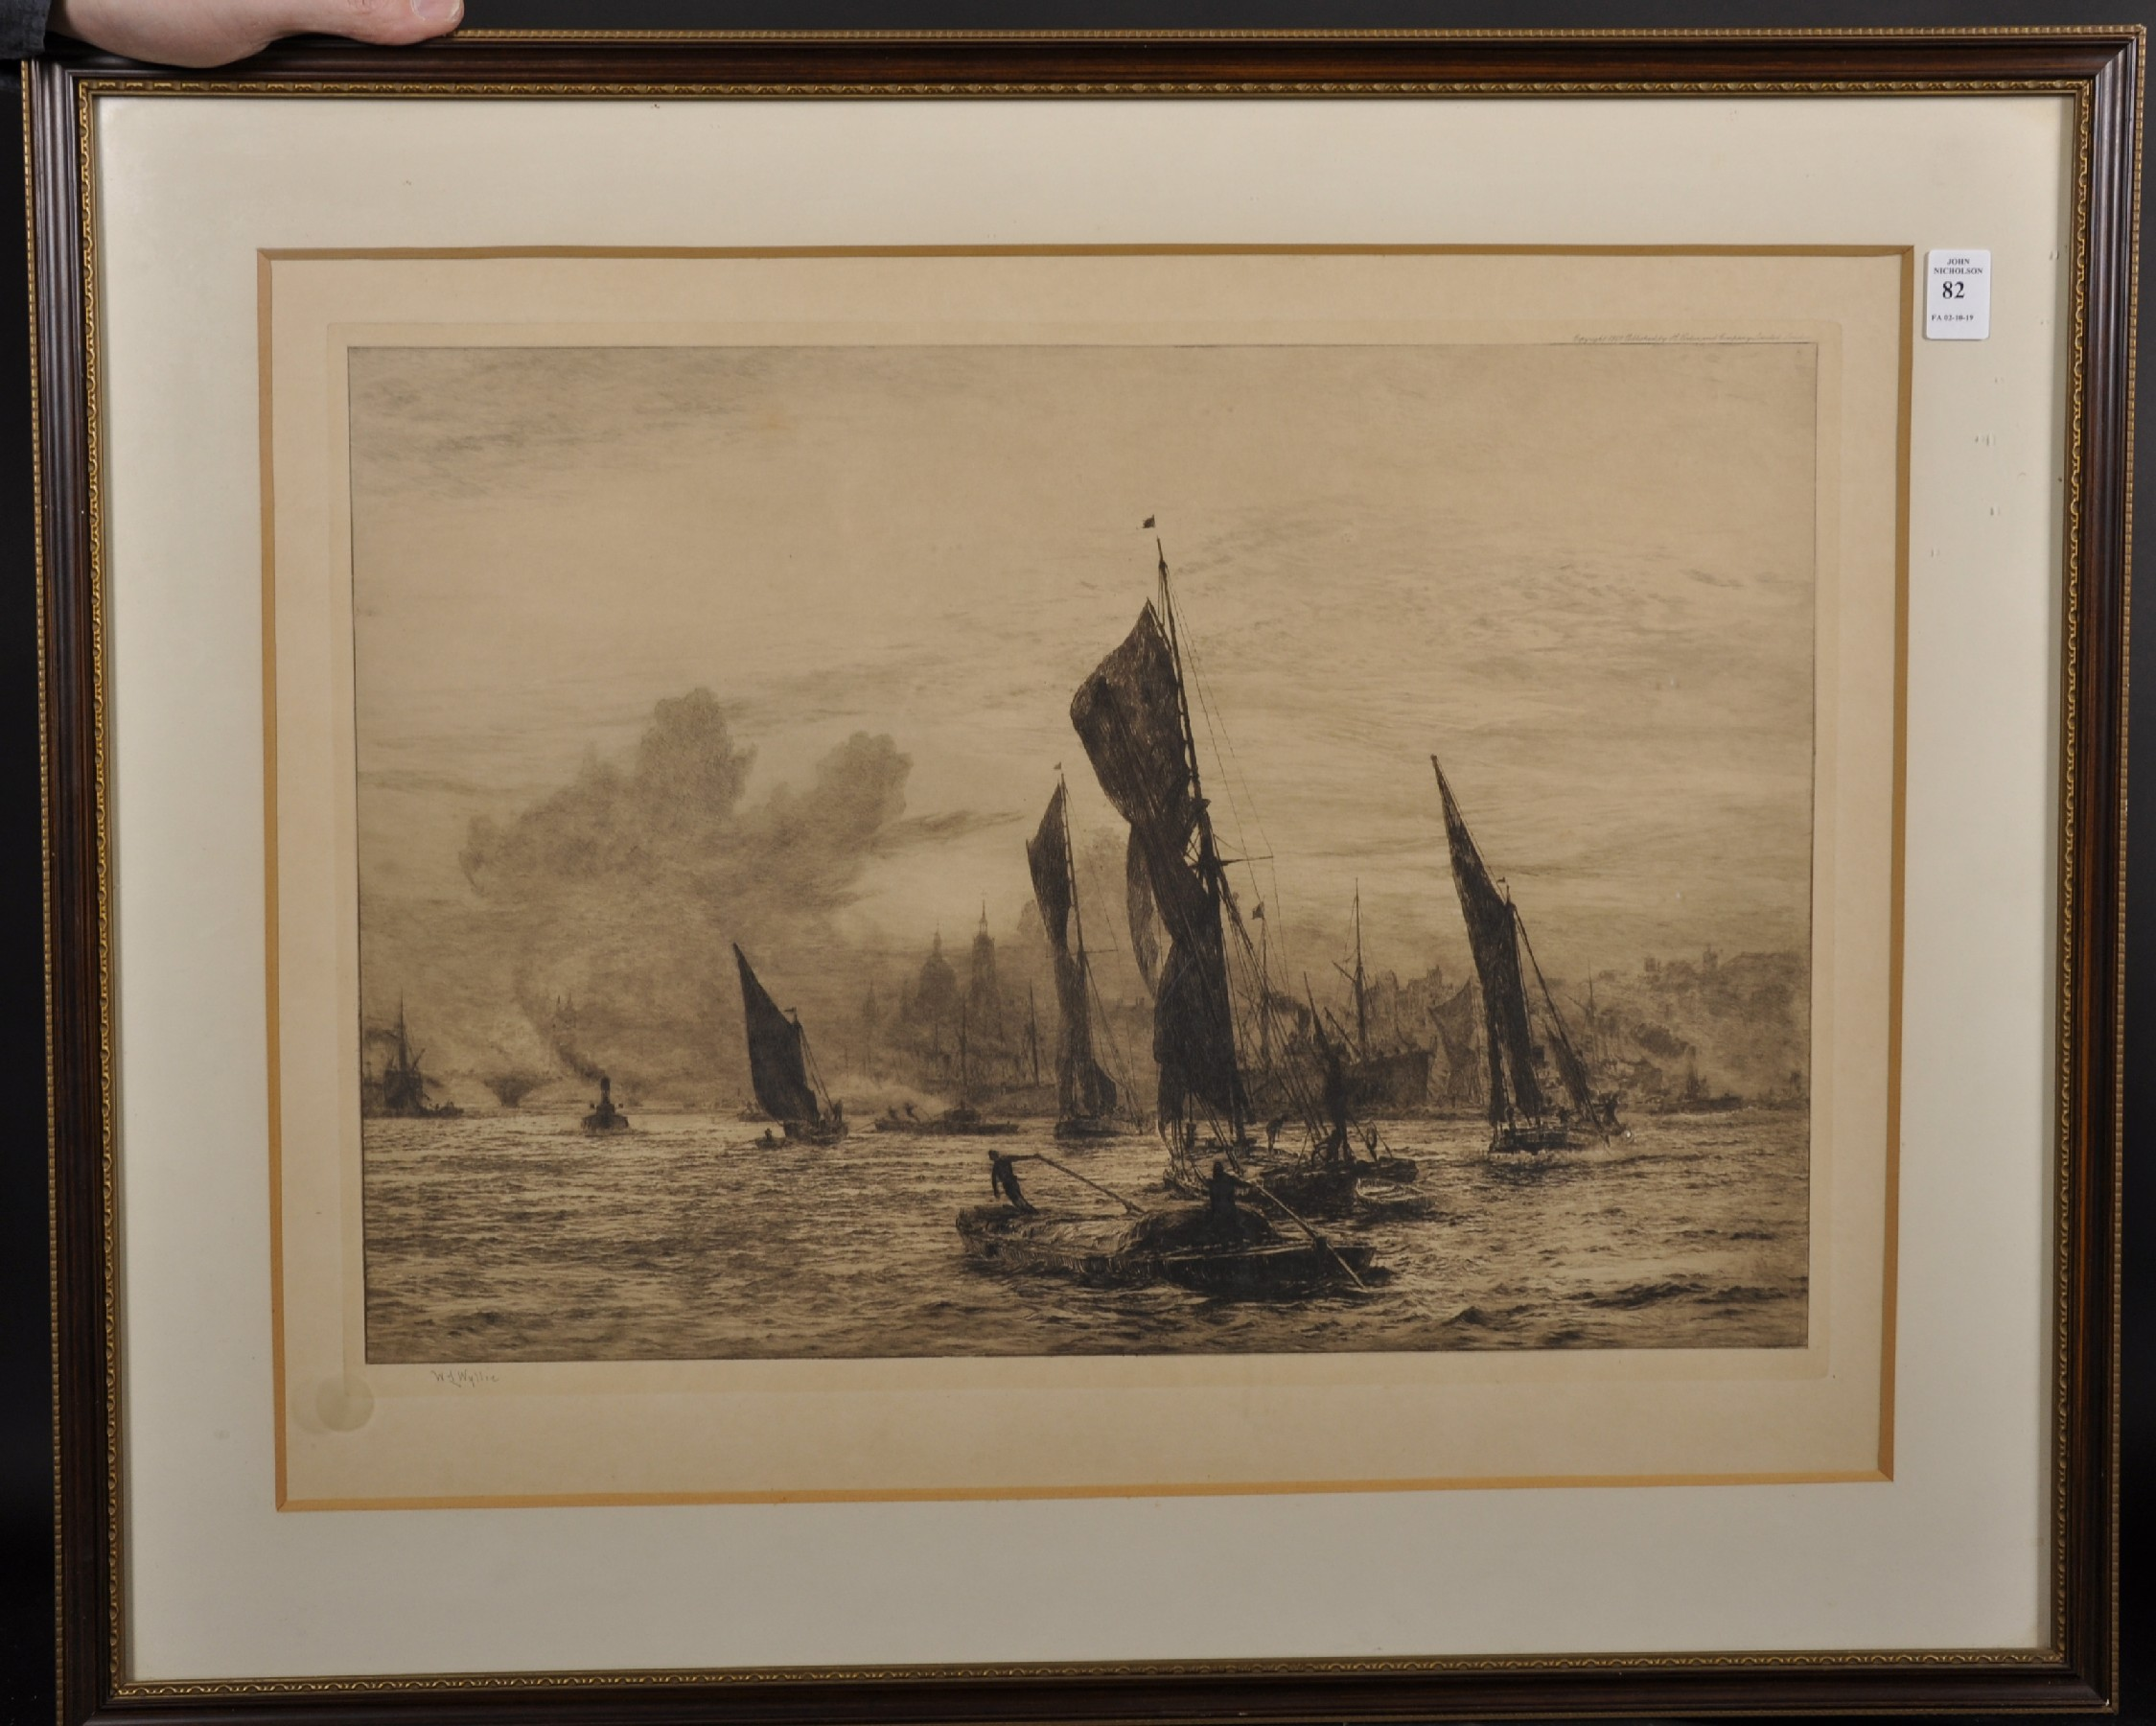 """William Lionel Wyllie (1851-1931) British. """"Barges on the Thames, London Bridge and St Paul's - Image 2 of 4"""